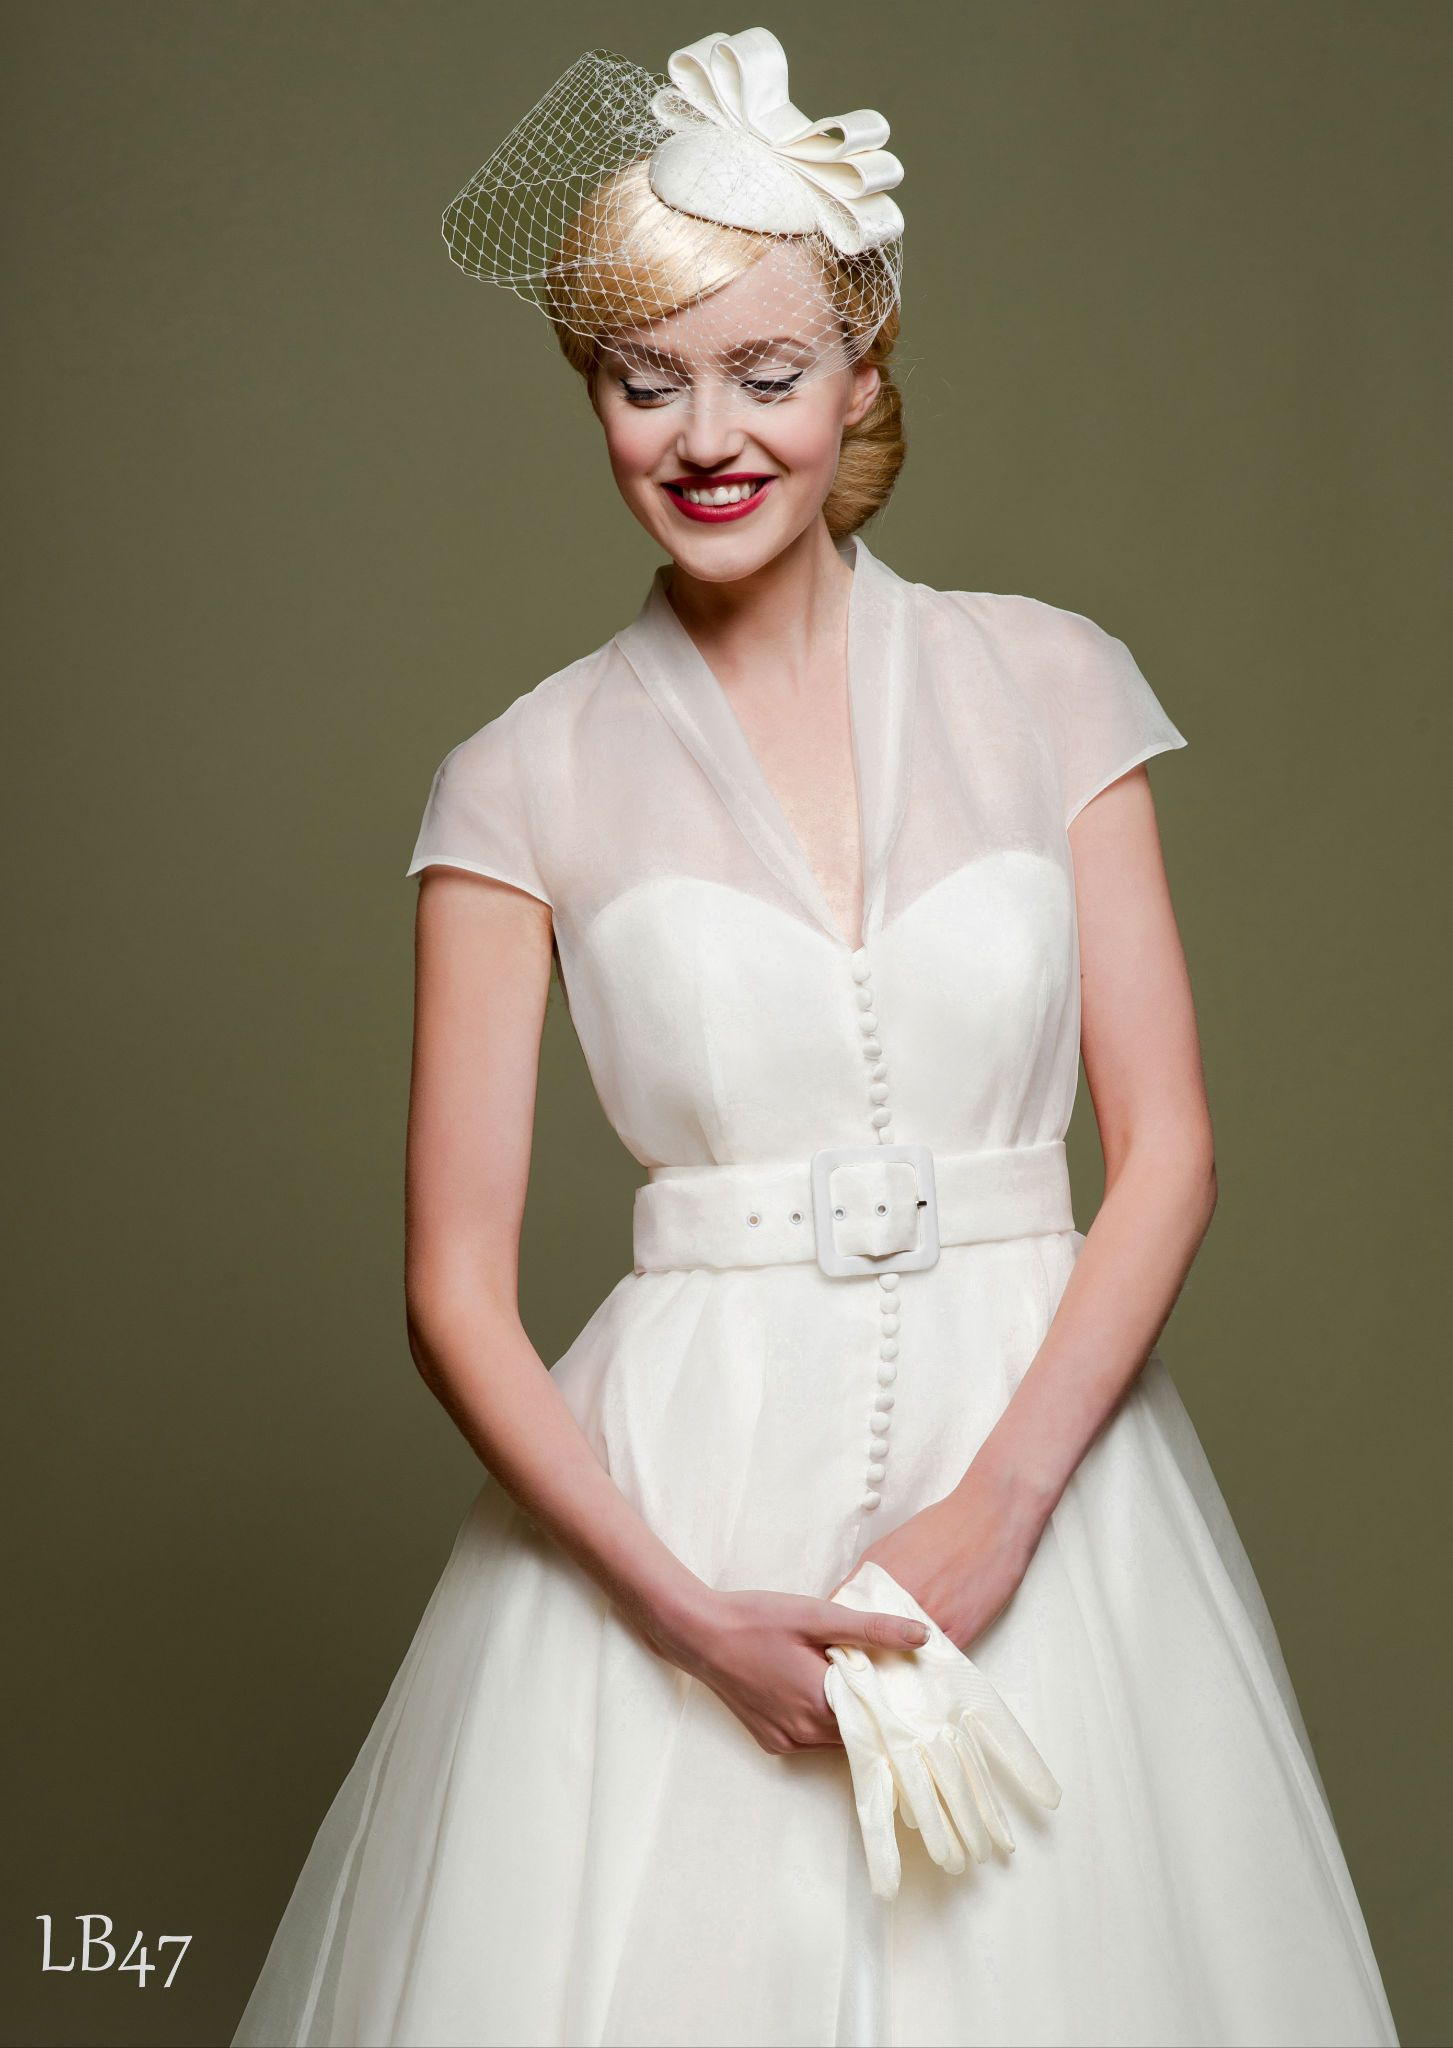 50s Vintage-Inspired Bridesmaid Dresses